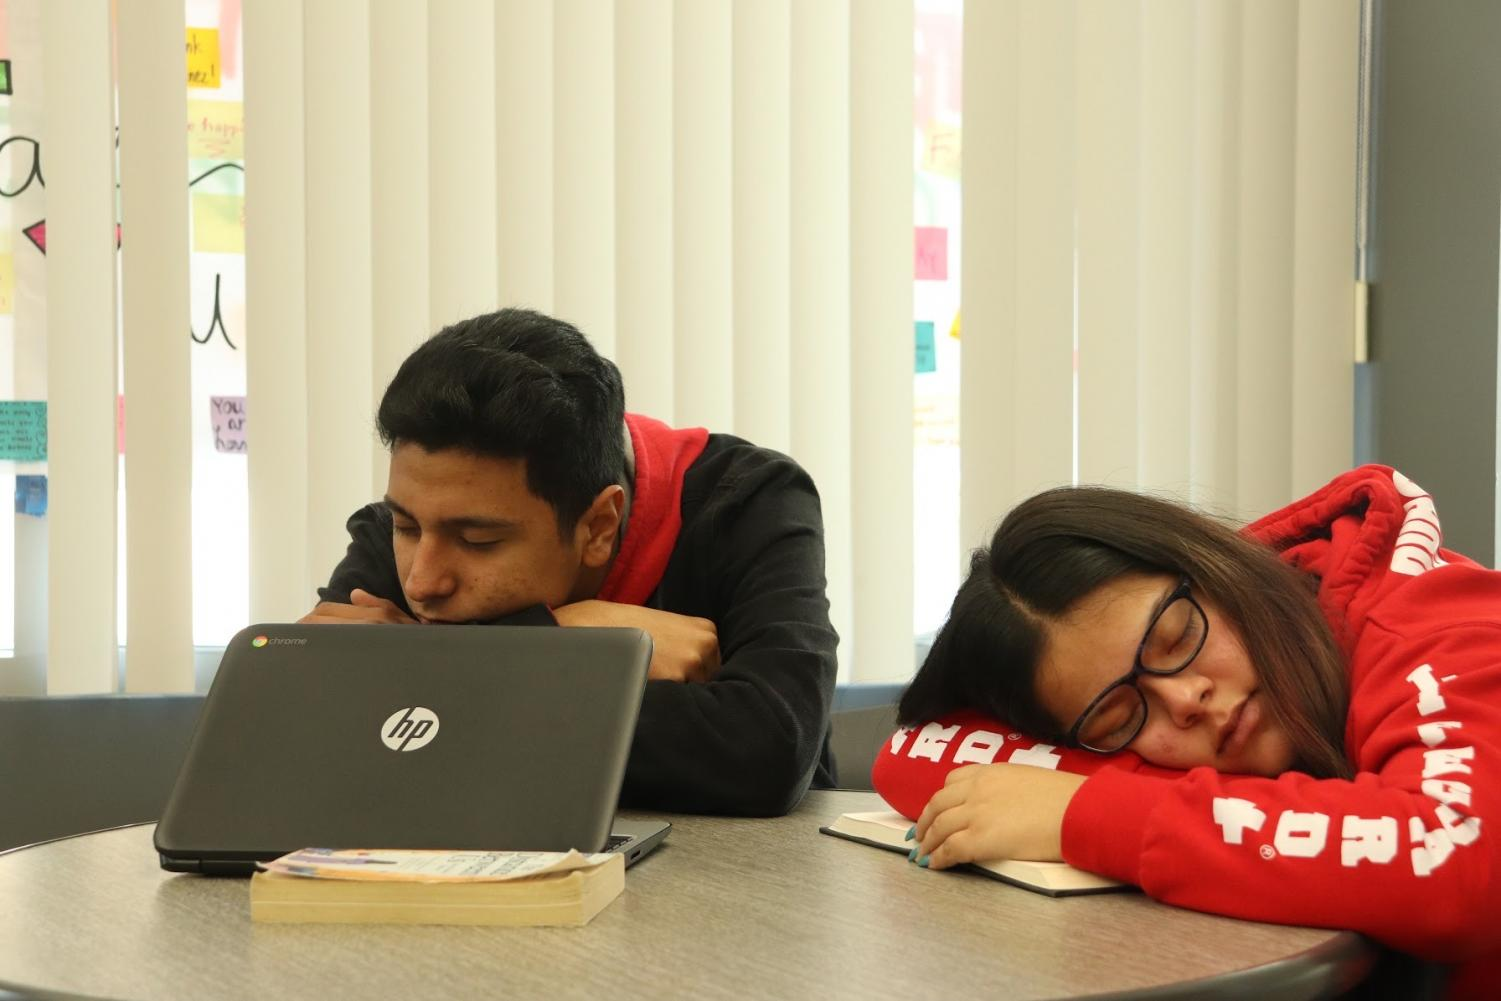 Two of our journalism students, Jonathan Uriostegui (left) and Editor-in-Chief Ashley Ortega (right), hope to stay awake after the new later start times commence. Photo taken Jan. 22, 2020 in the Wellness Center at 8:53 a.m.